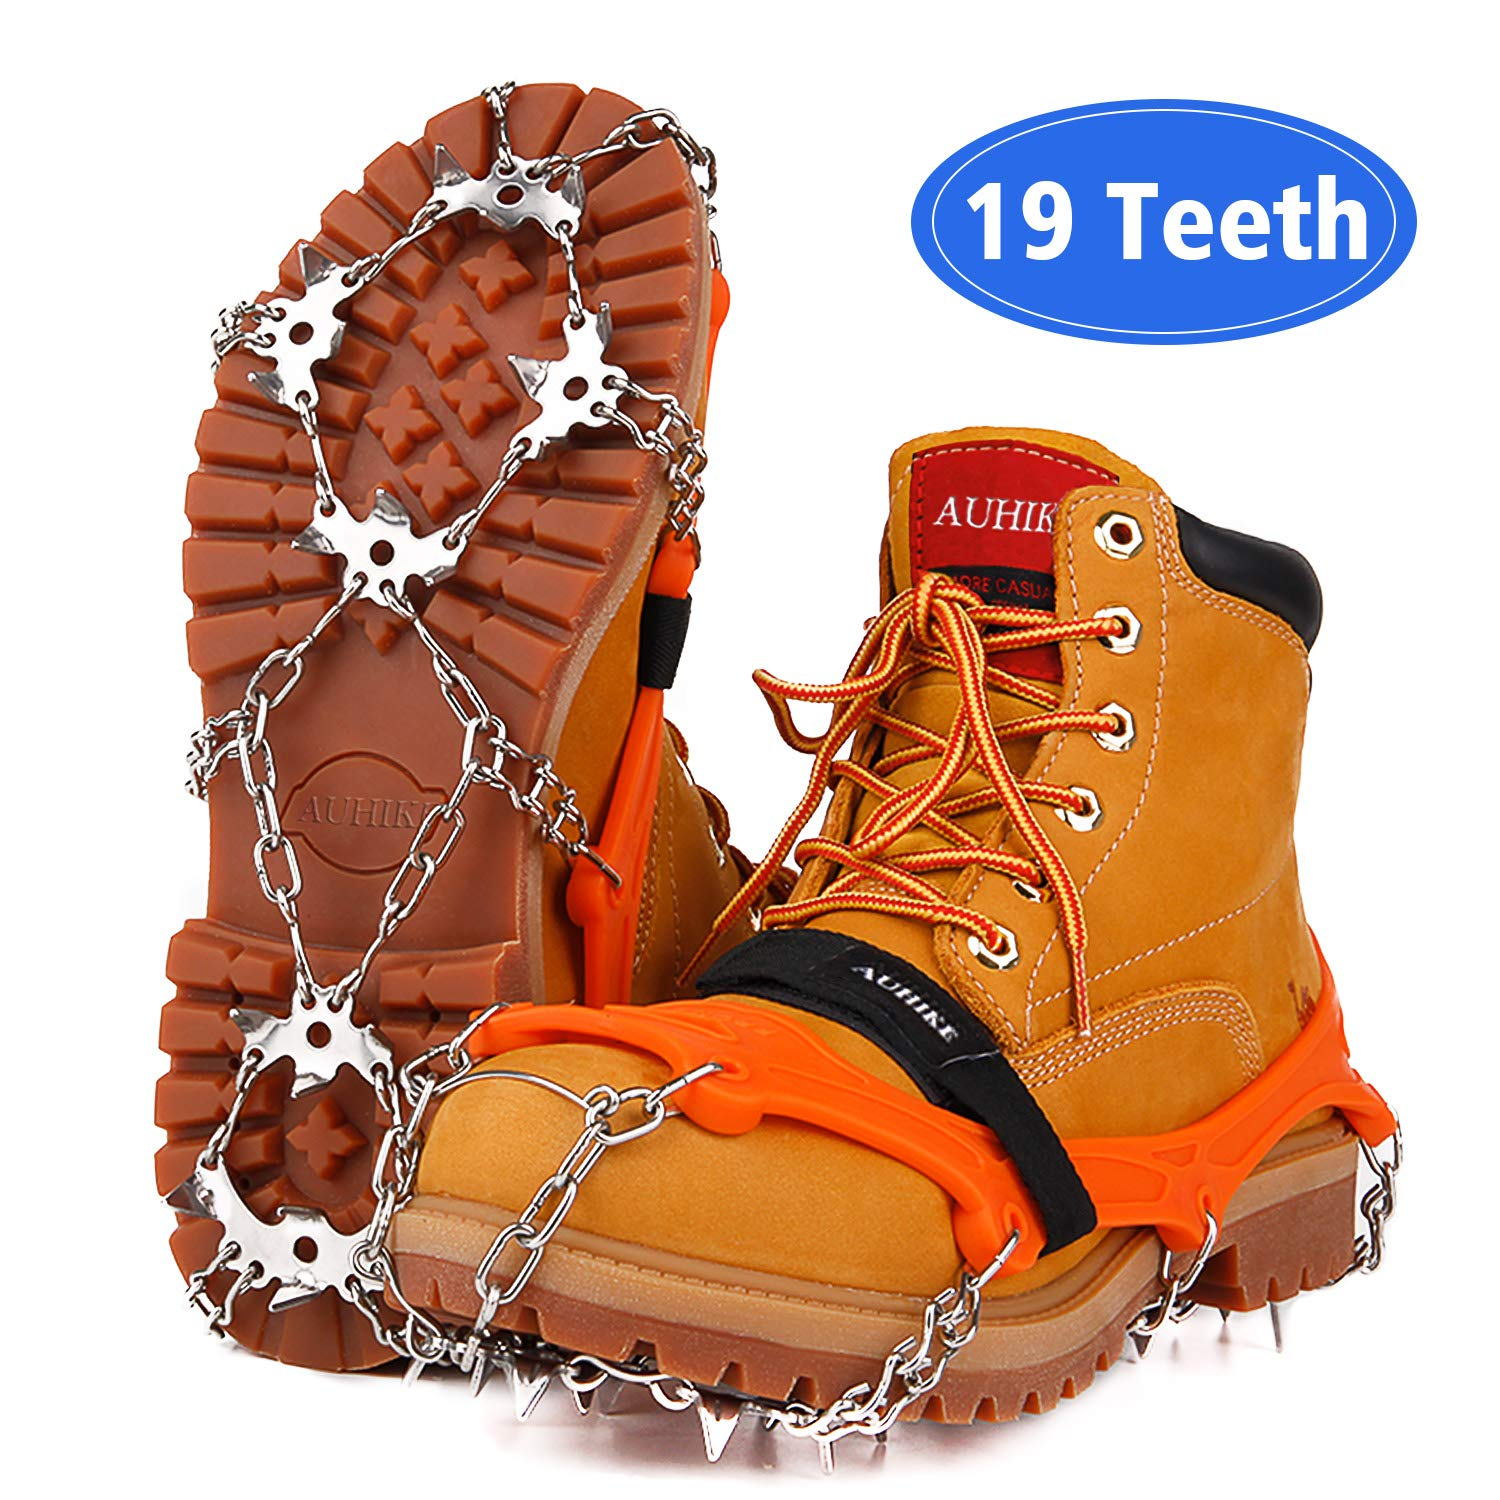 AUHIKE Upgraded Version 19 Spikes Traction Cleats Ice Snow Grips with Tear-Resistant Gasket Seamless Welded Steel Safe Protect,Crampons for Hiking Fishing Jogging Mountaineering Walking